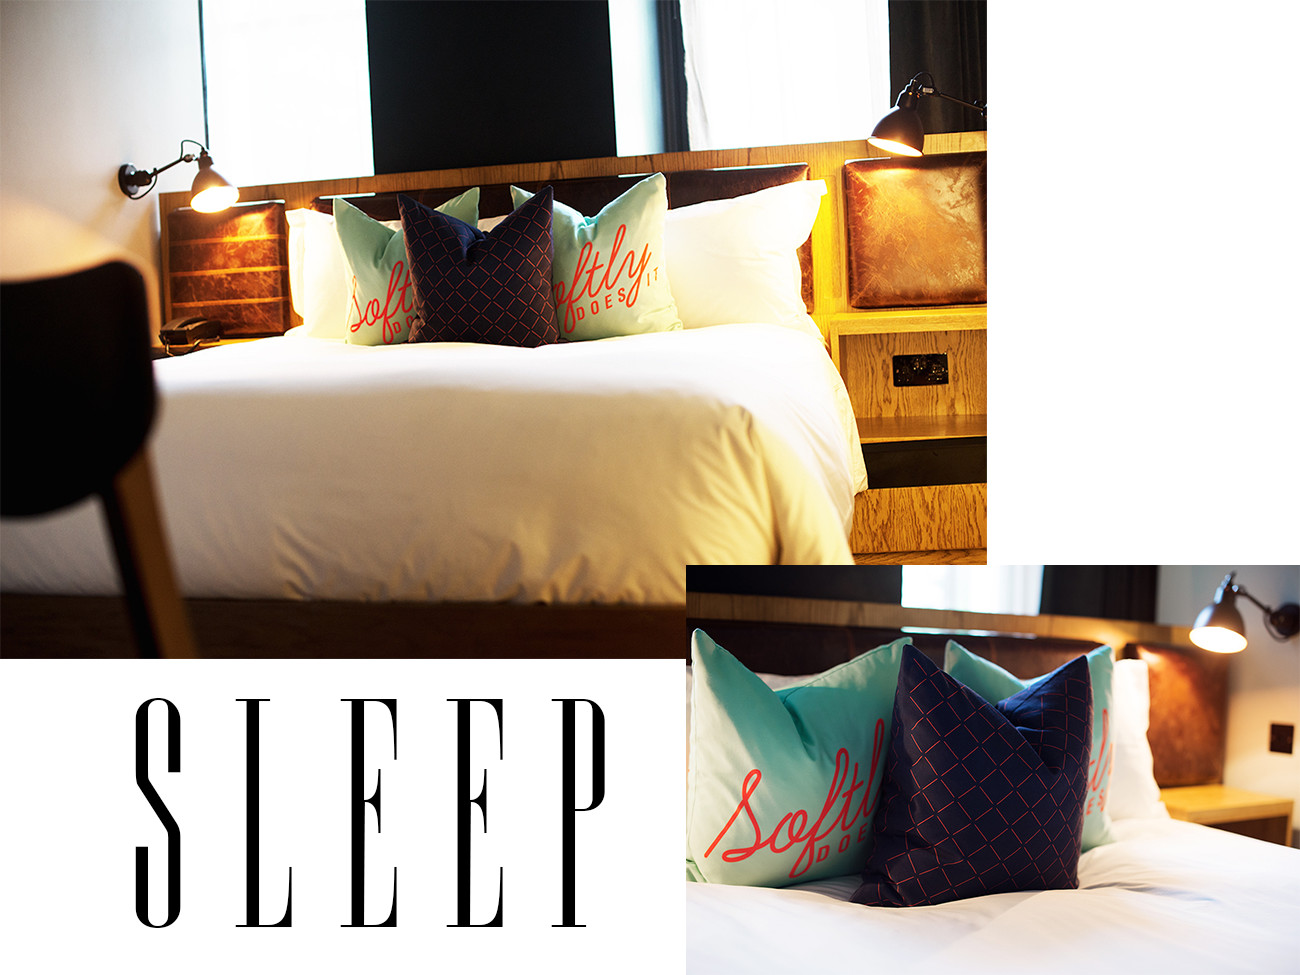 TheHoxton-Hotel-Sleep-Travelguide-London-Sequinsophia-Munich-1-